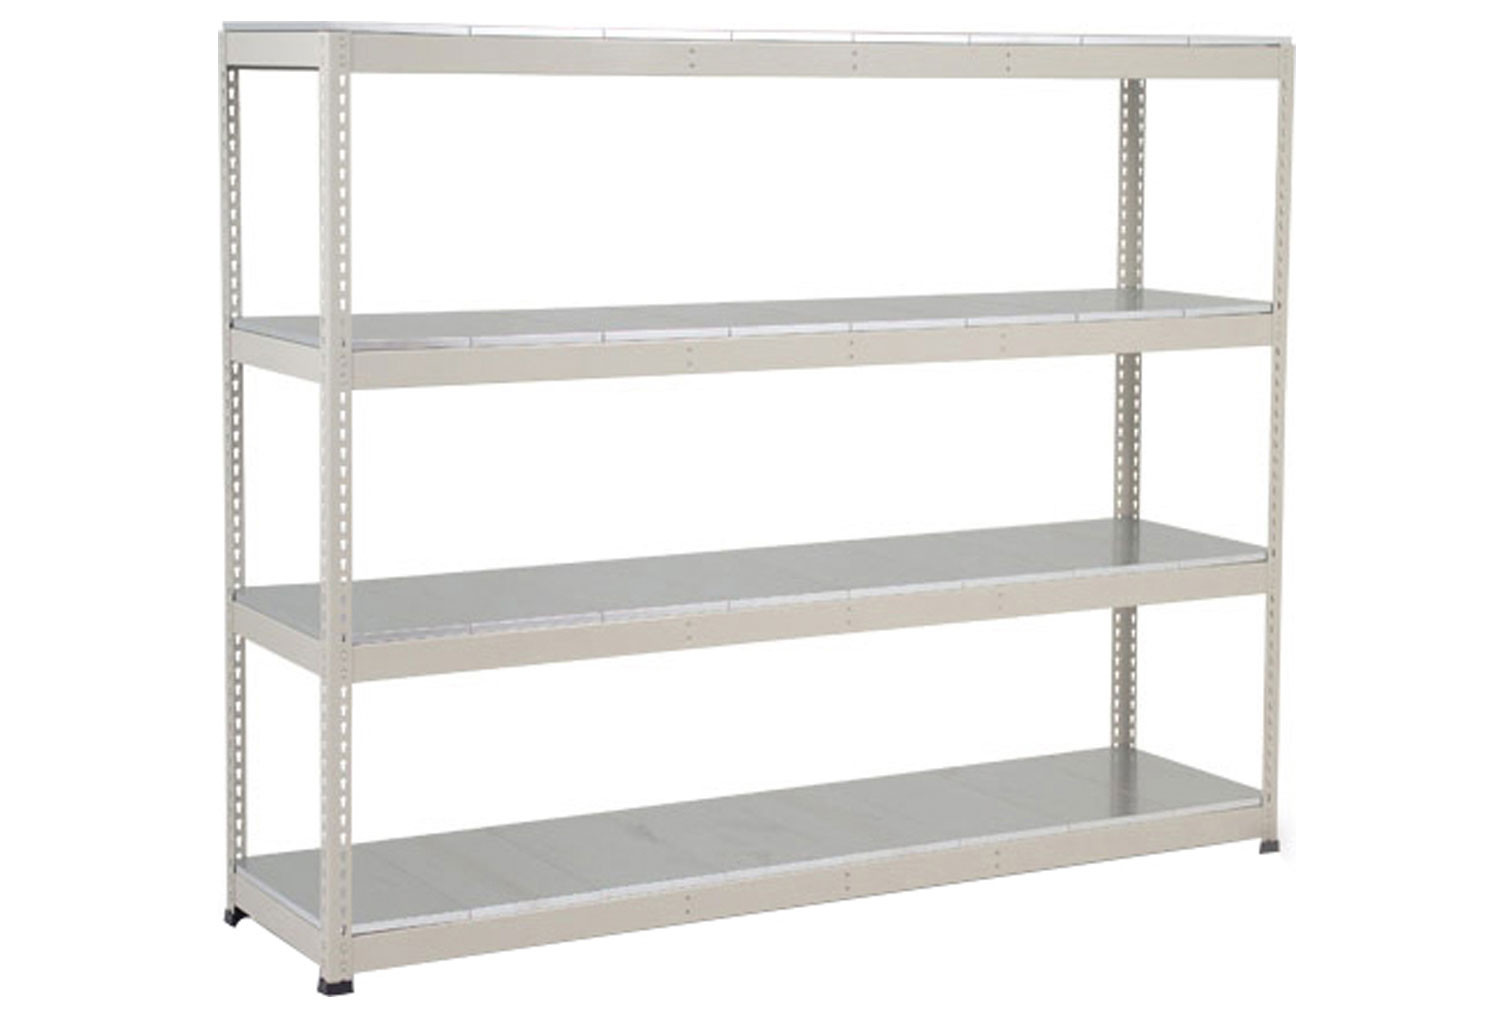 Rapid 1 Heavy Duty Shelving With 4 Galvanized Shelves 2440wx1980h (Grey)